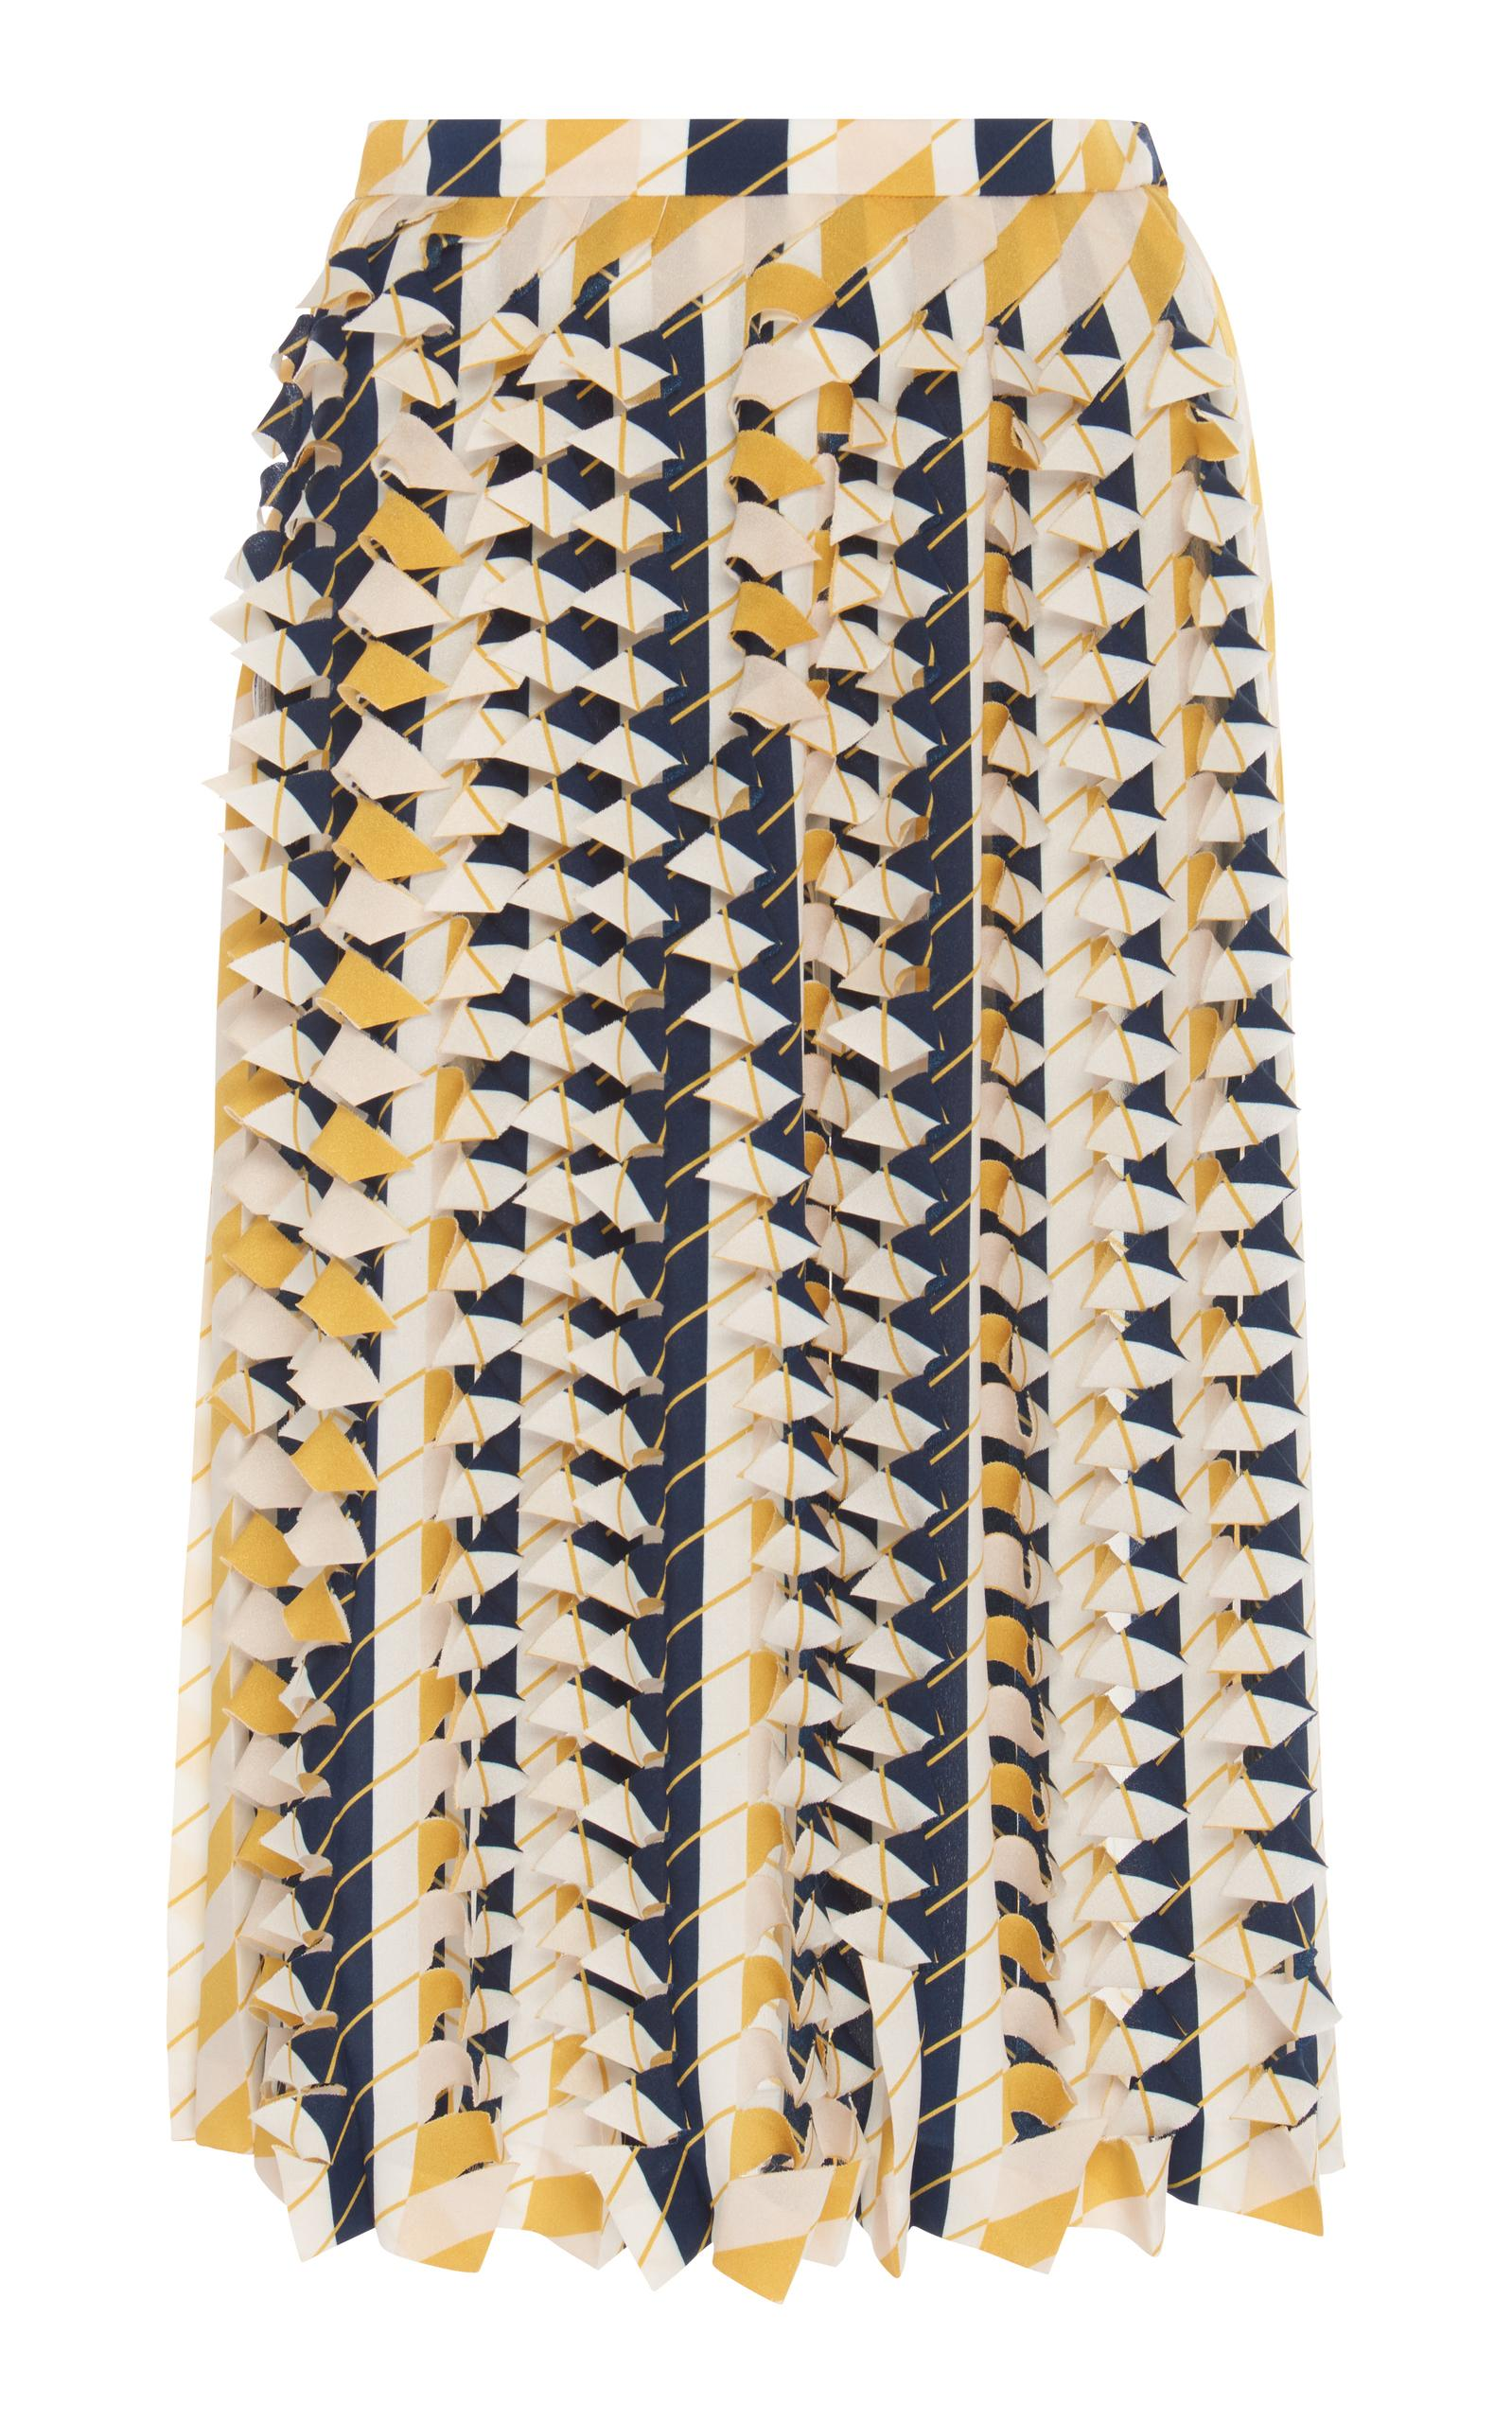 Maison Margiela Vertical Scallop Pleated Skirt In Multi